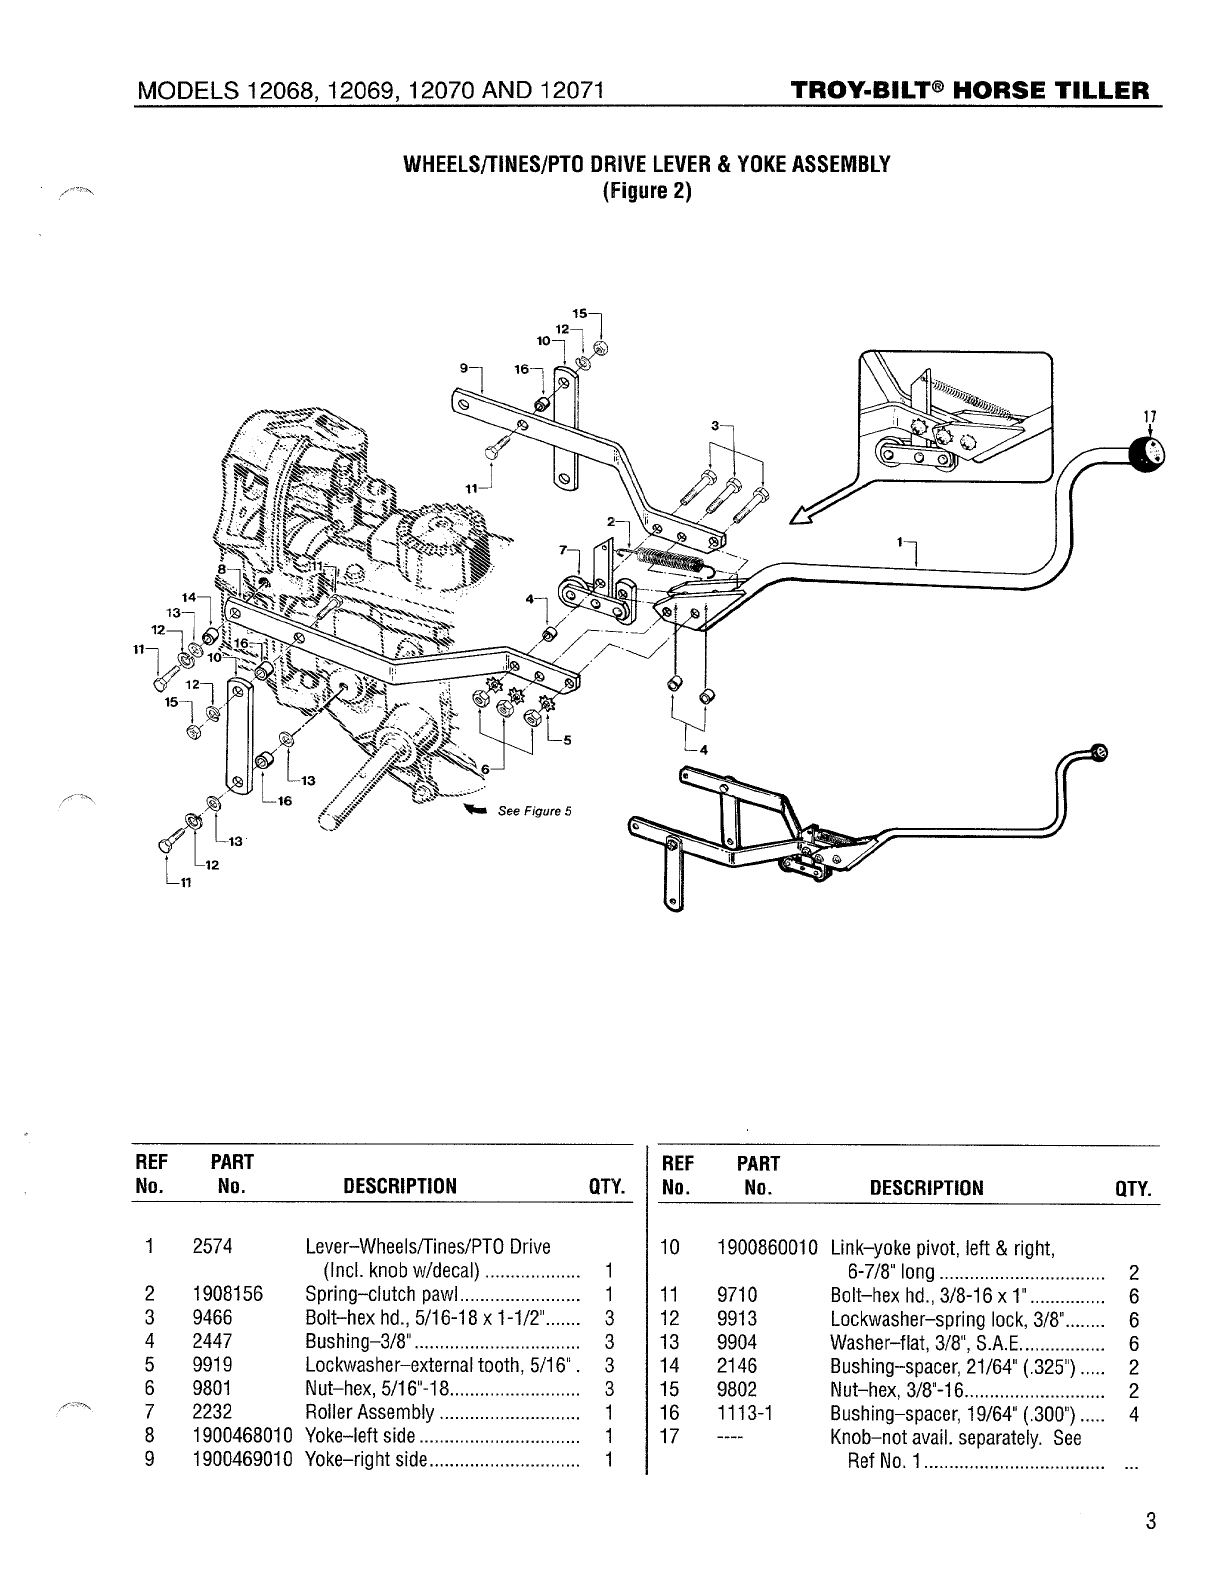 Page 5 of Troy-Bilt Tiller 12068 User Guide